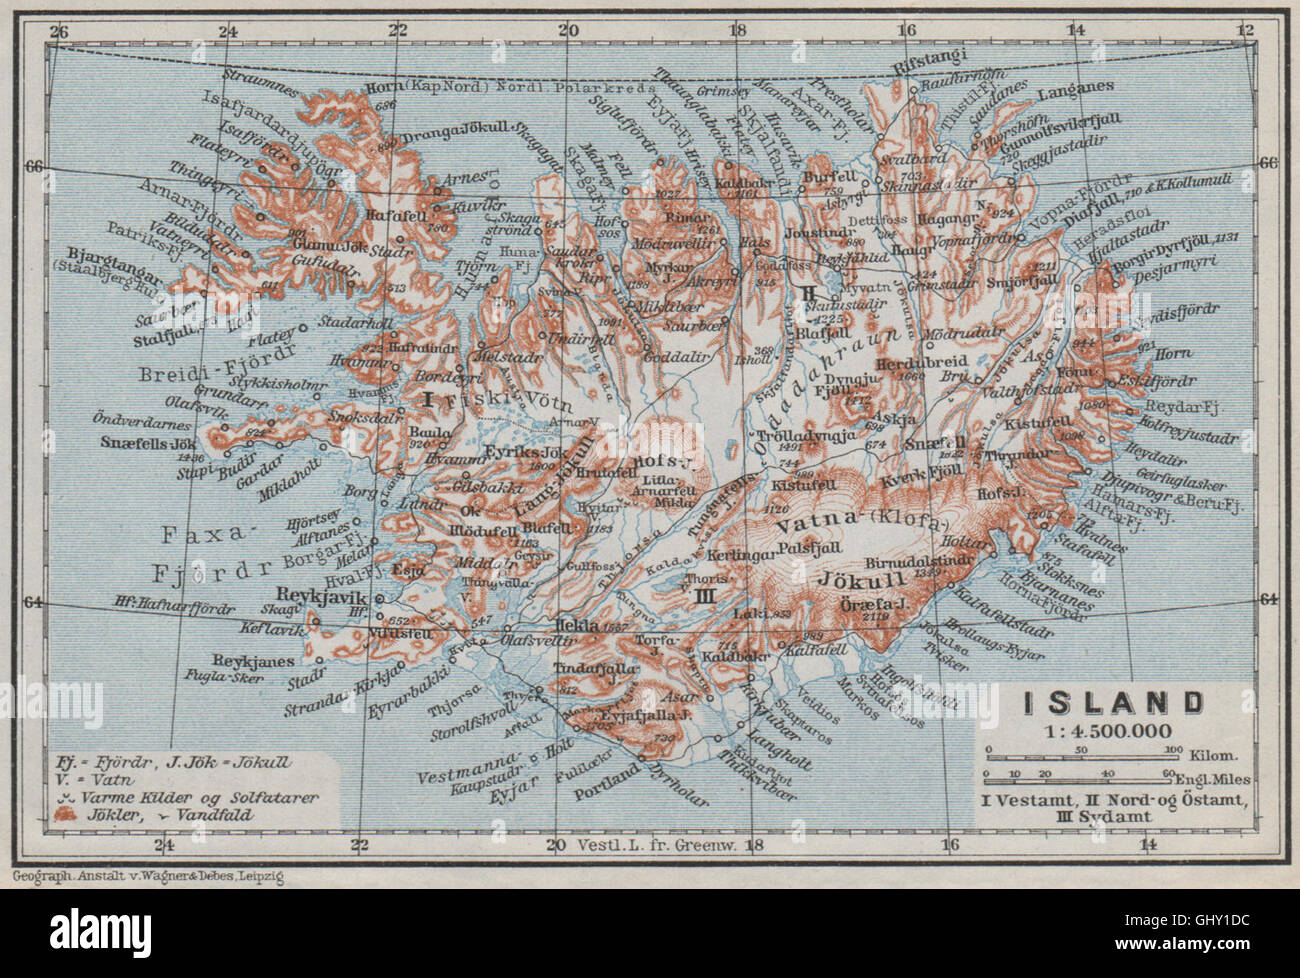 Topographic Map Of Iceland.Iceland Island Reykjavik Topo Map Kort Baedeker 1909 Stock Photo